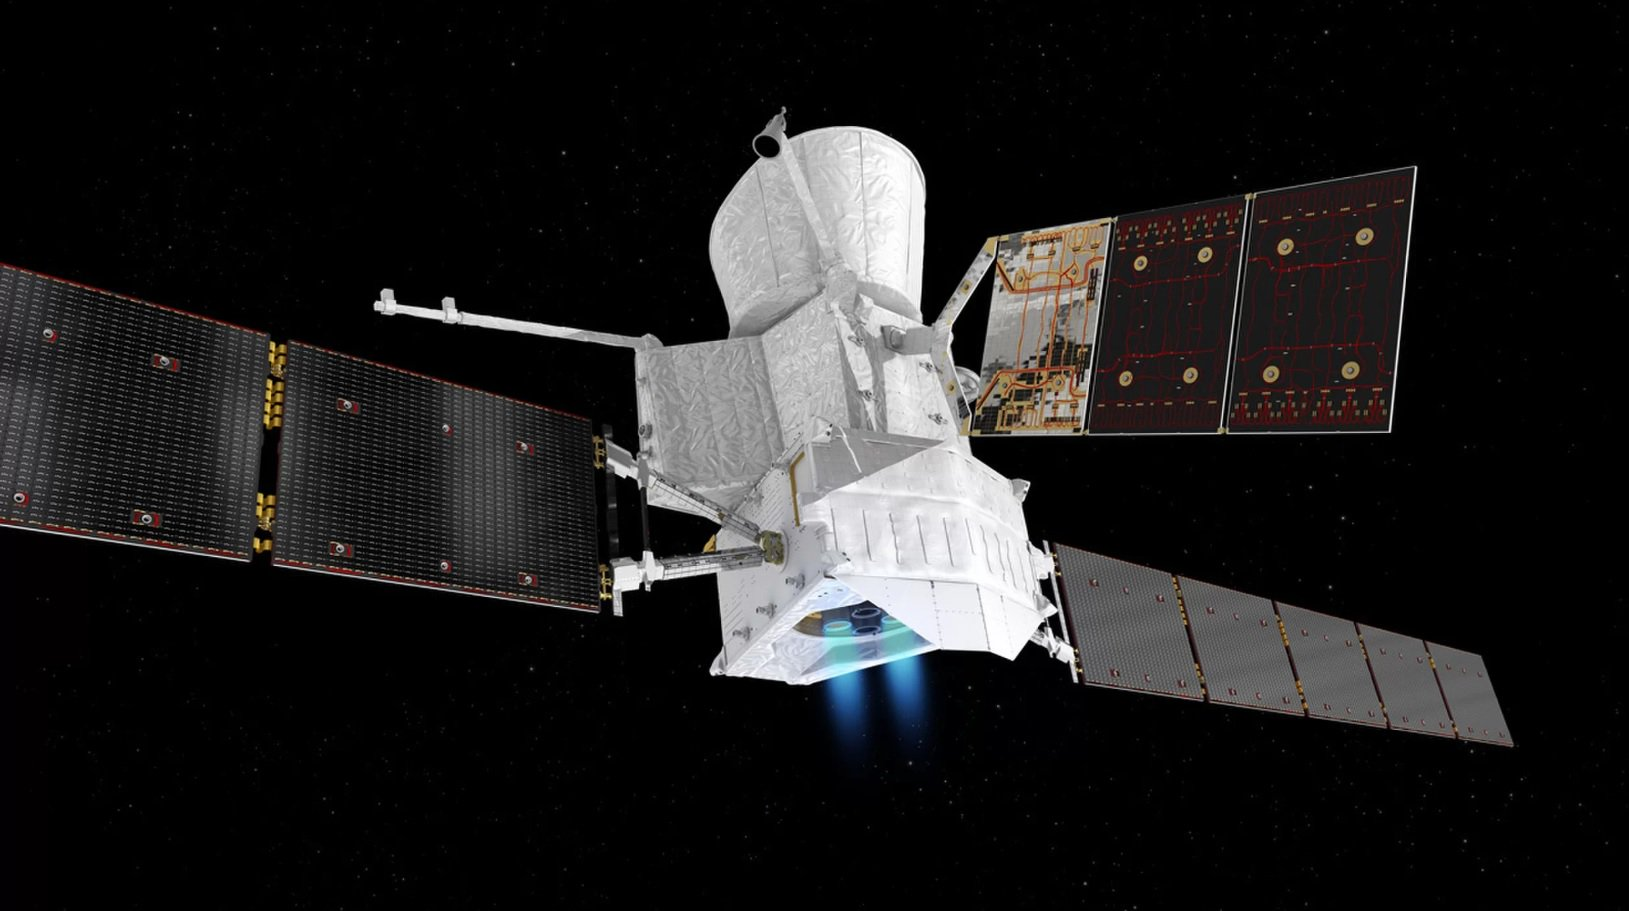 Ion engines mission BepiColombo passed the first test in space